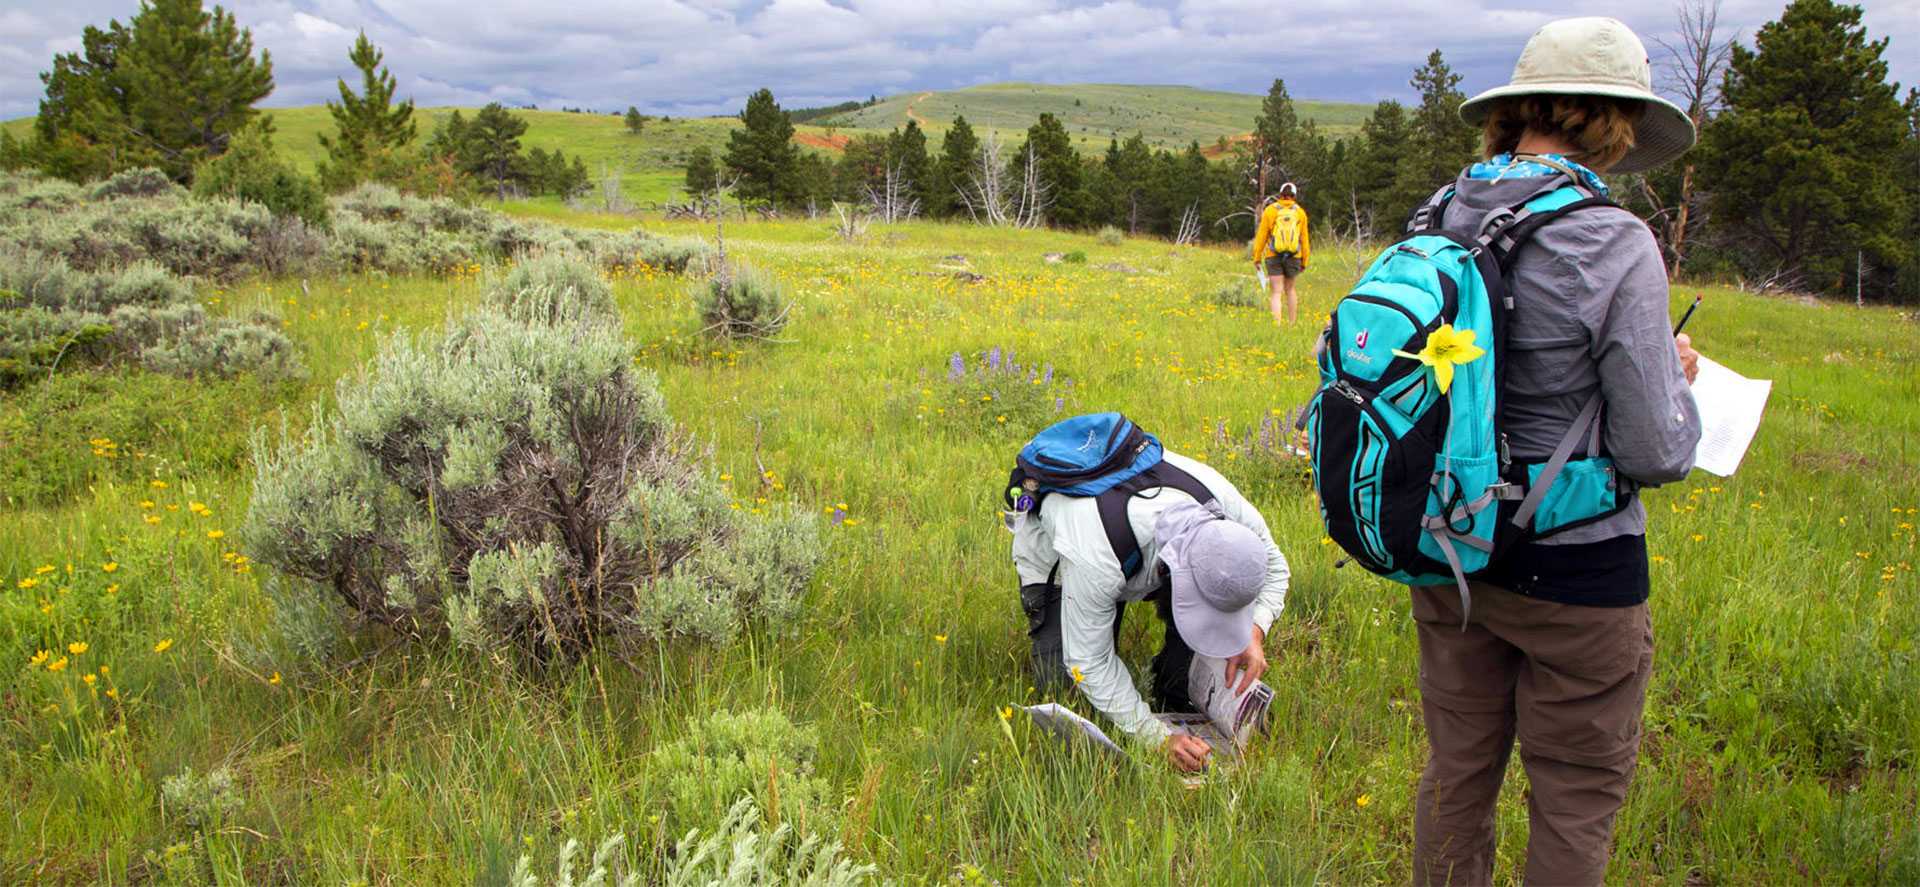 Wyoming BioBlitz